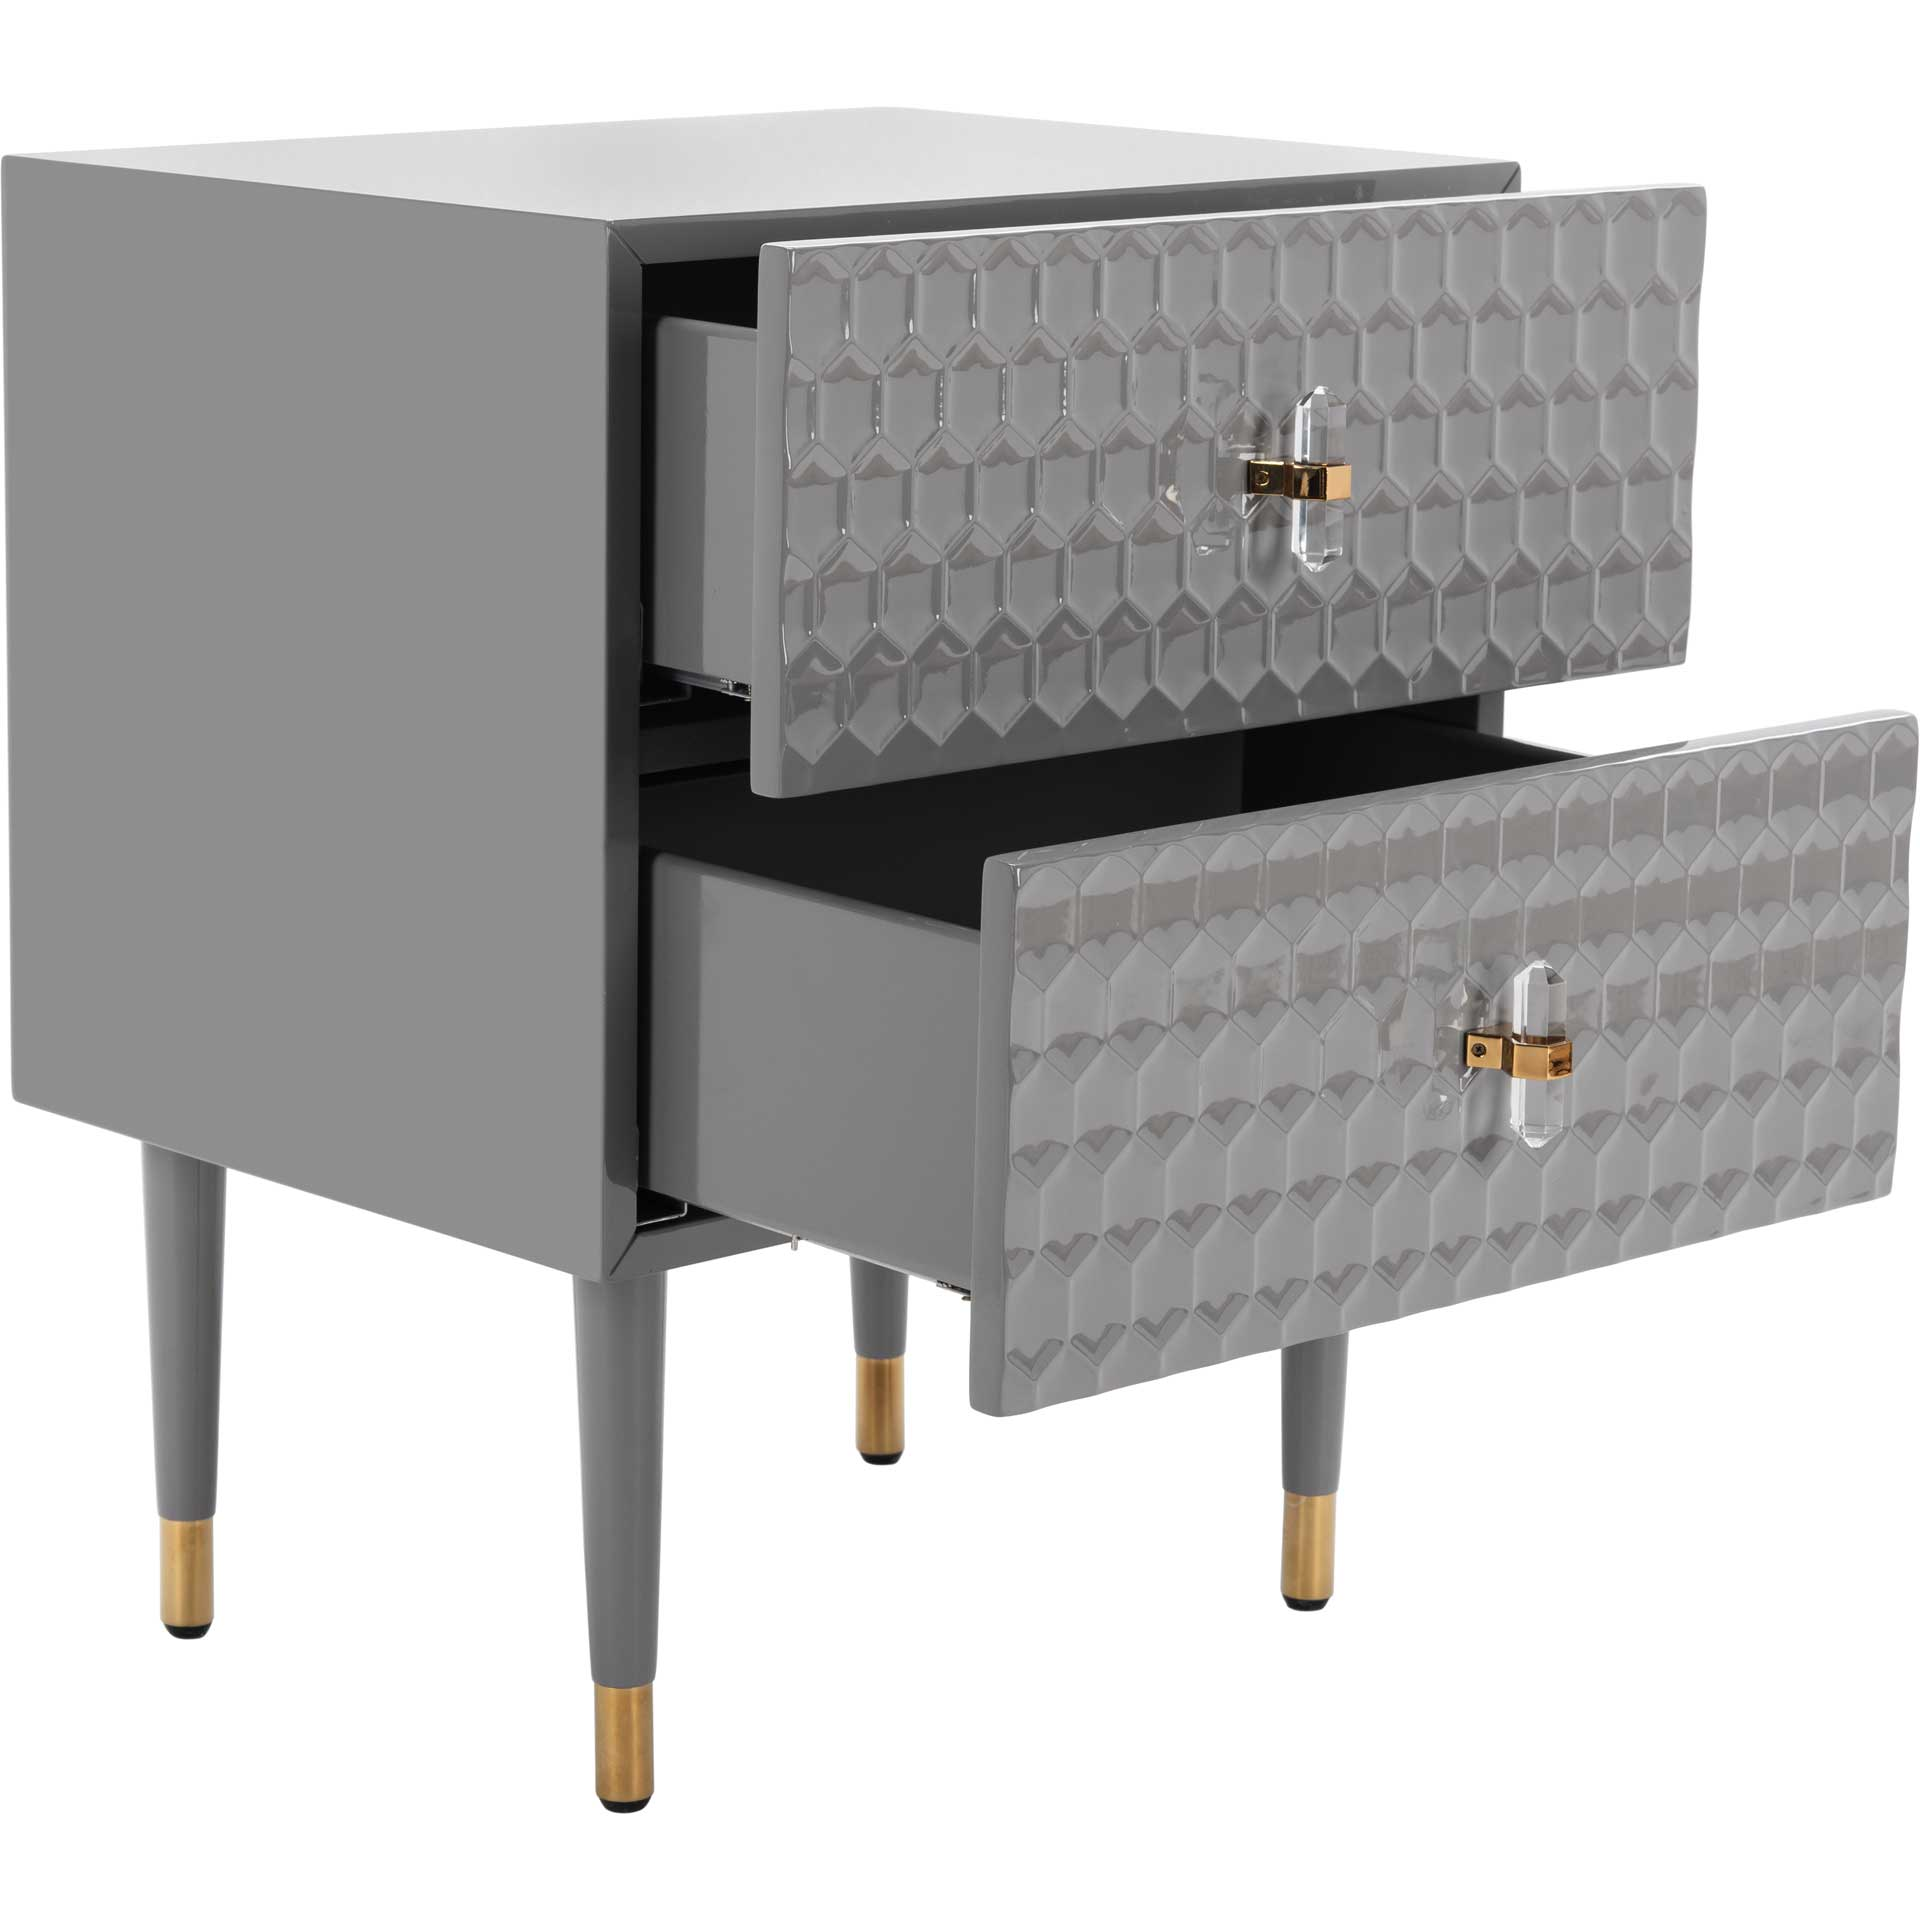 Nevaeh 2 Drawer Side Table Gray/Gold